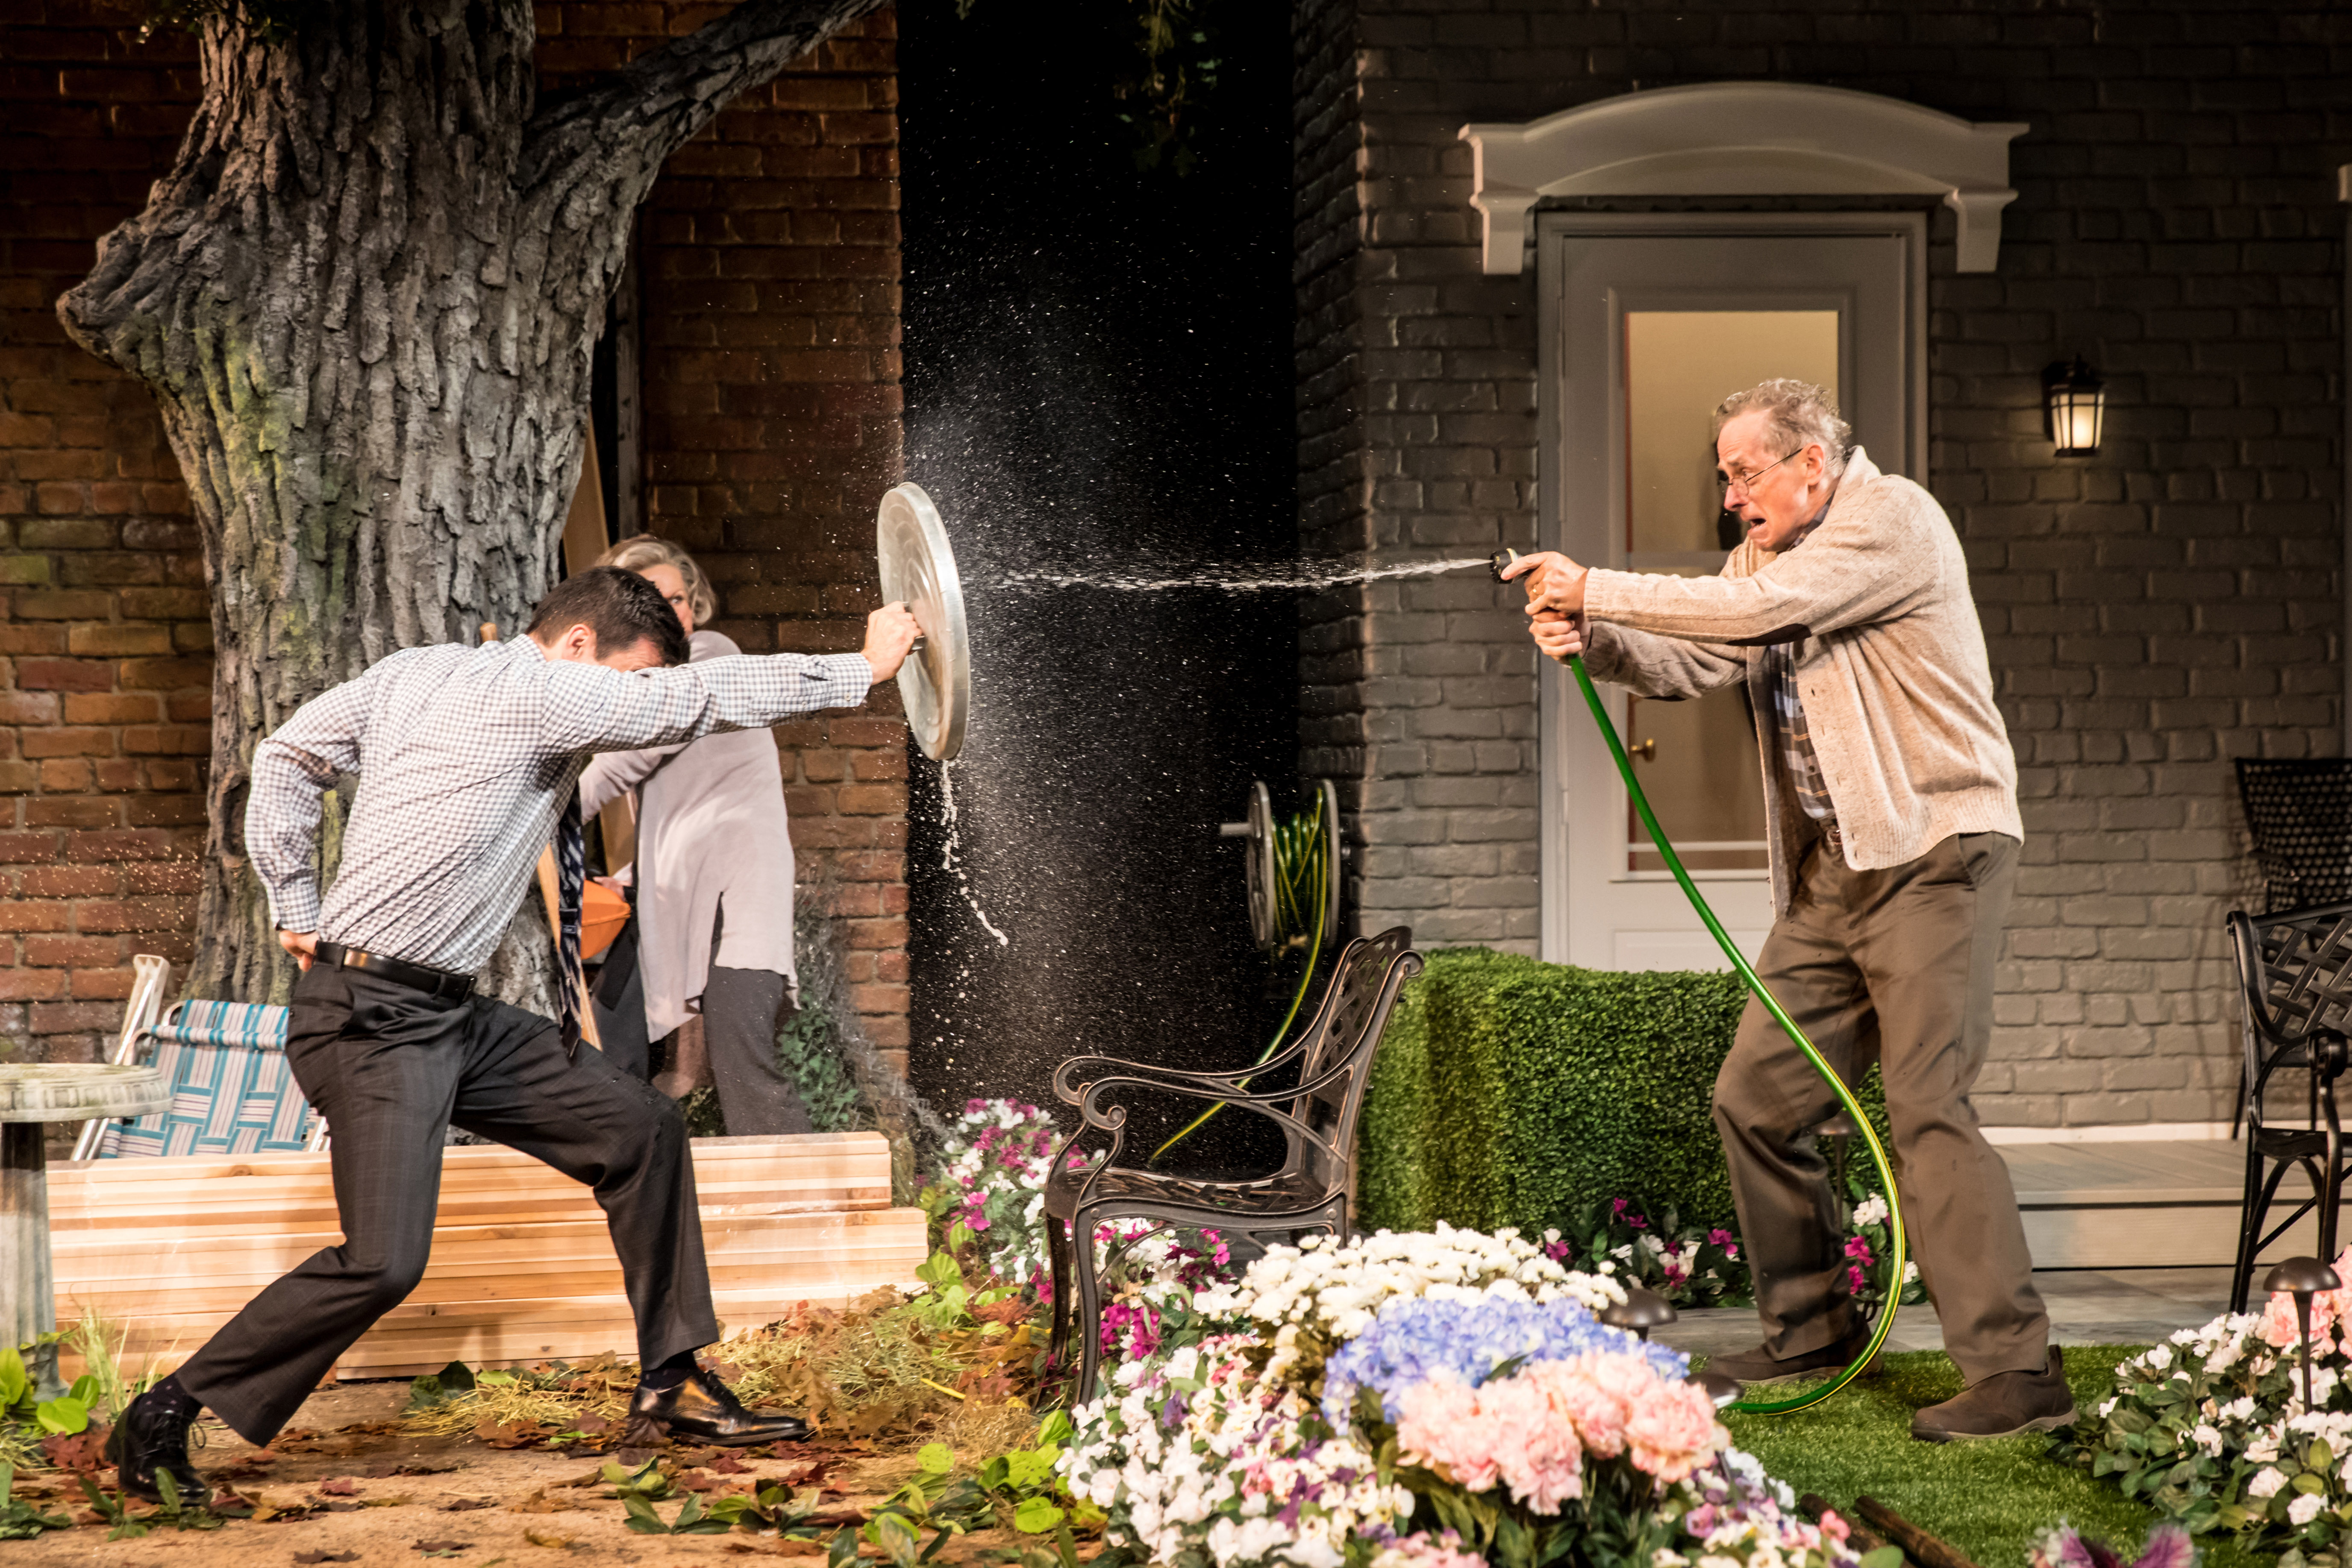 Dan Domingues as Pablo Del Valle, Steve Hendrickson as Frank Butley and Sally Wingert as Virginia Butley in Native Gardens, running September 15-October 22, 2017 at Arena Stage at the Mead Center for American Theater. Photo by Dan Norman for Guthrie Theater.